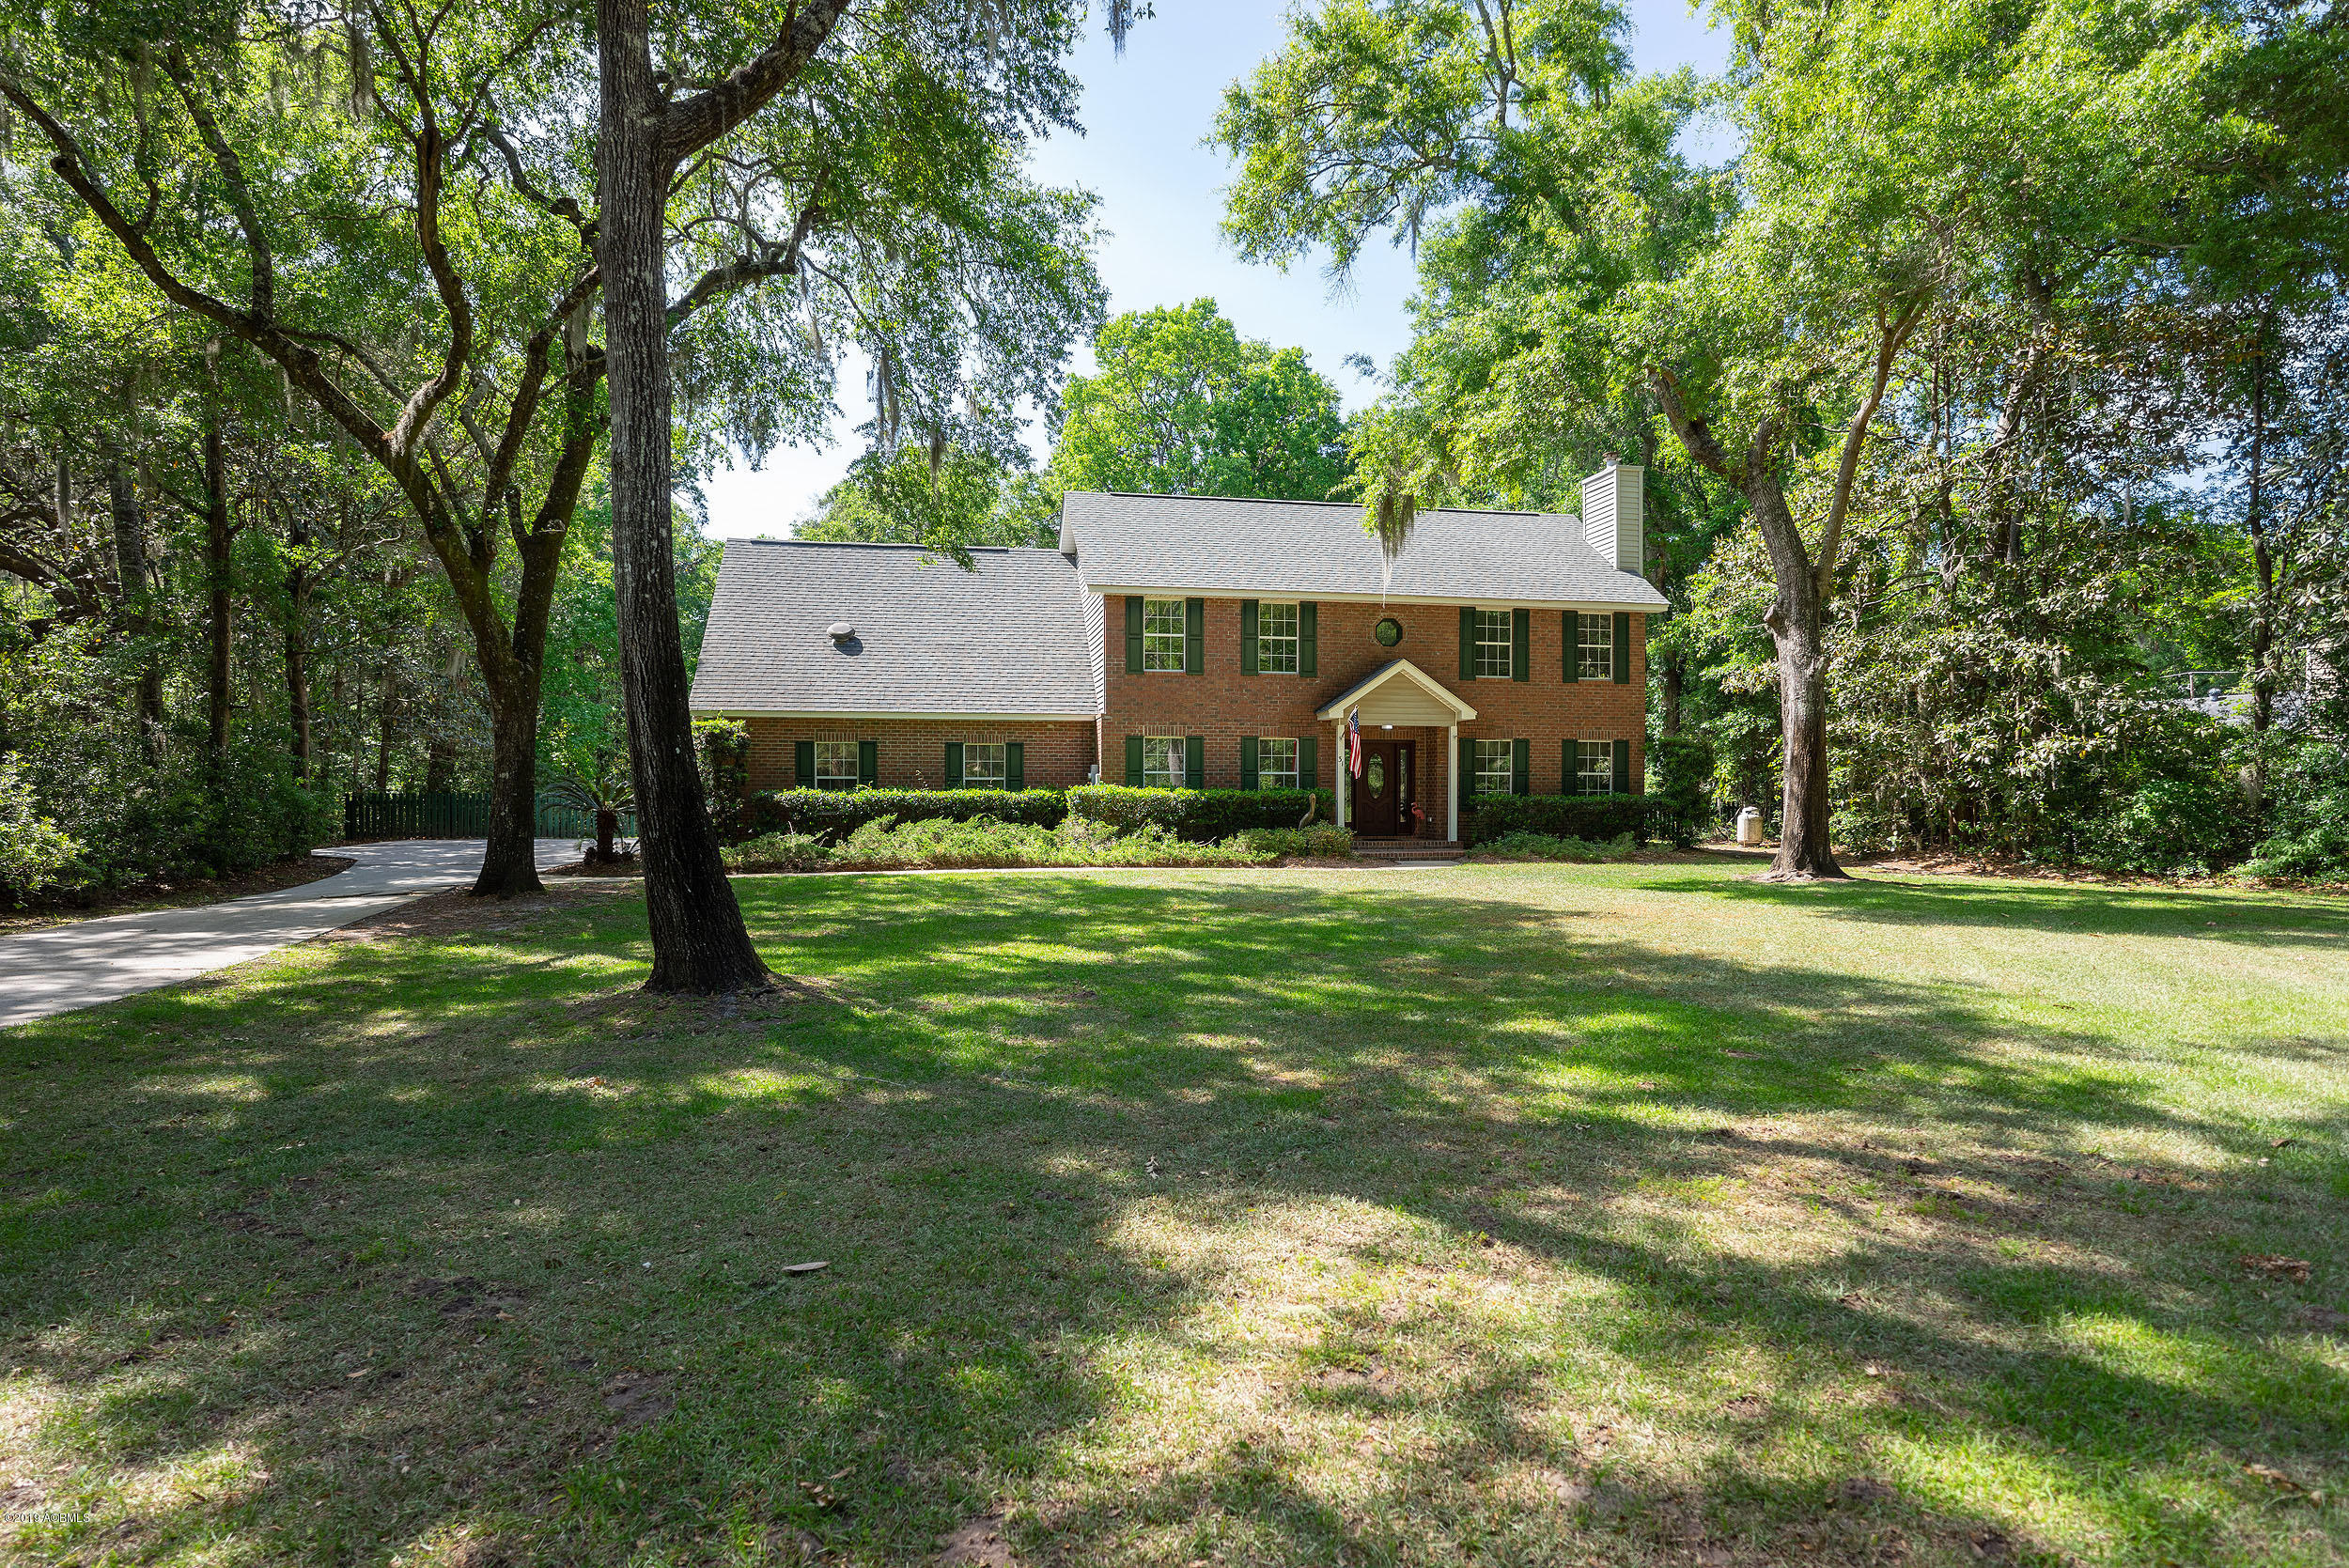 Photo of 31 Lucy Creek Drive, Beaufort, SC 29907